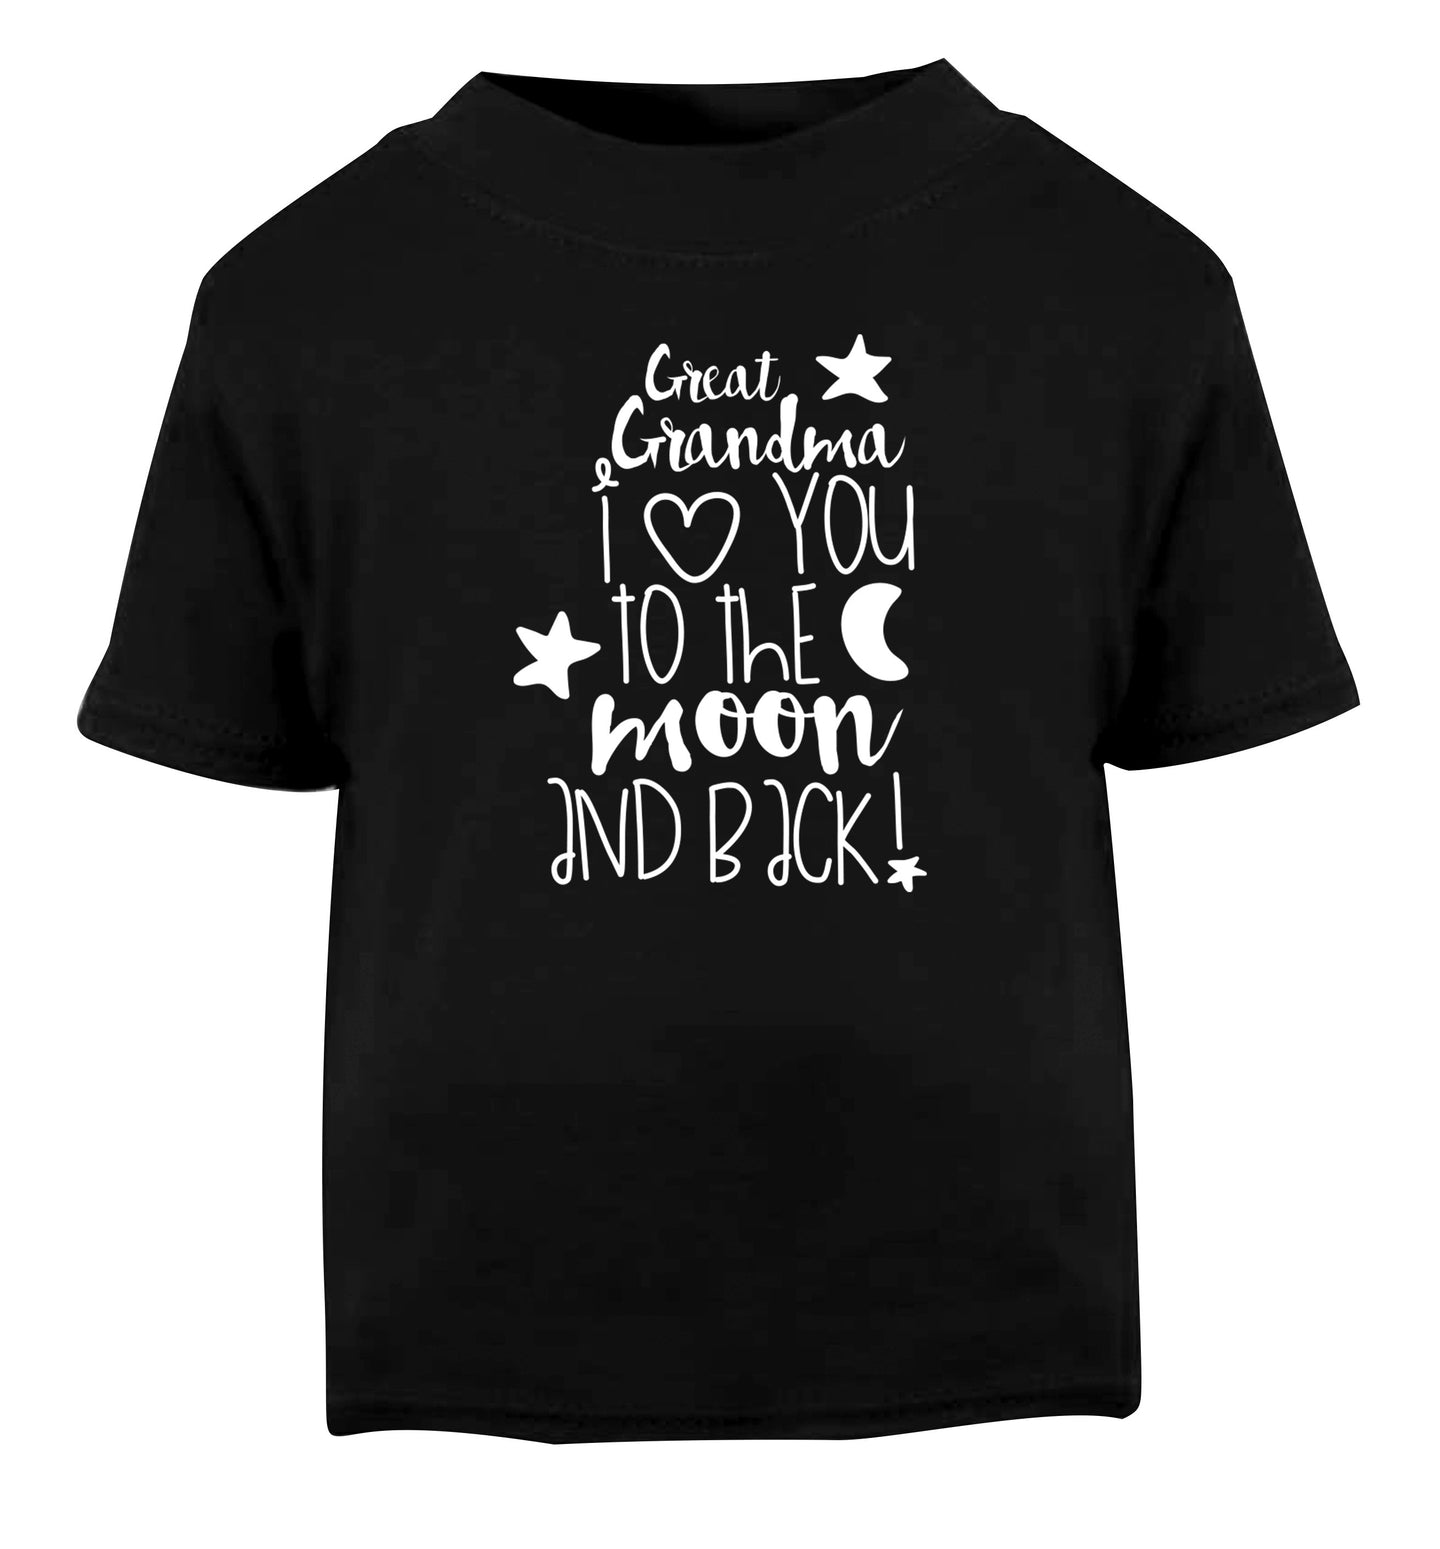 Great Grandma I love you to the moon and back Black Baby Toddler Tshirt 2 years